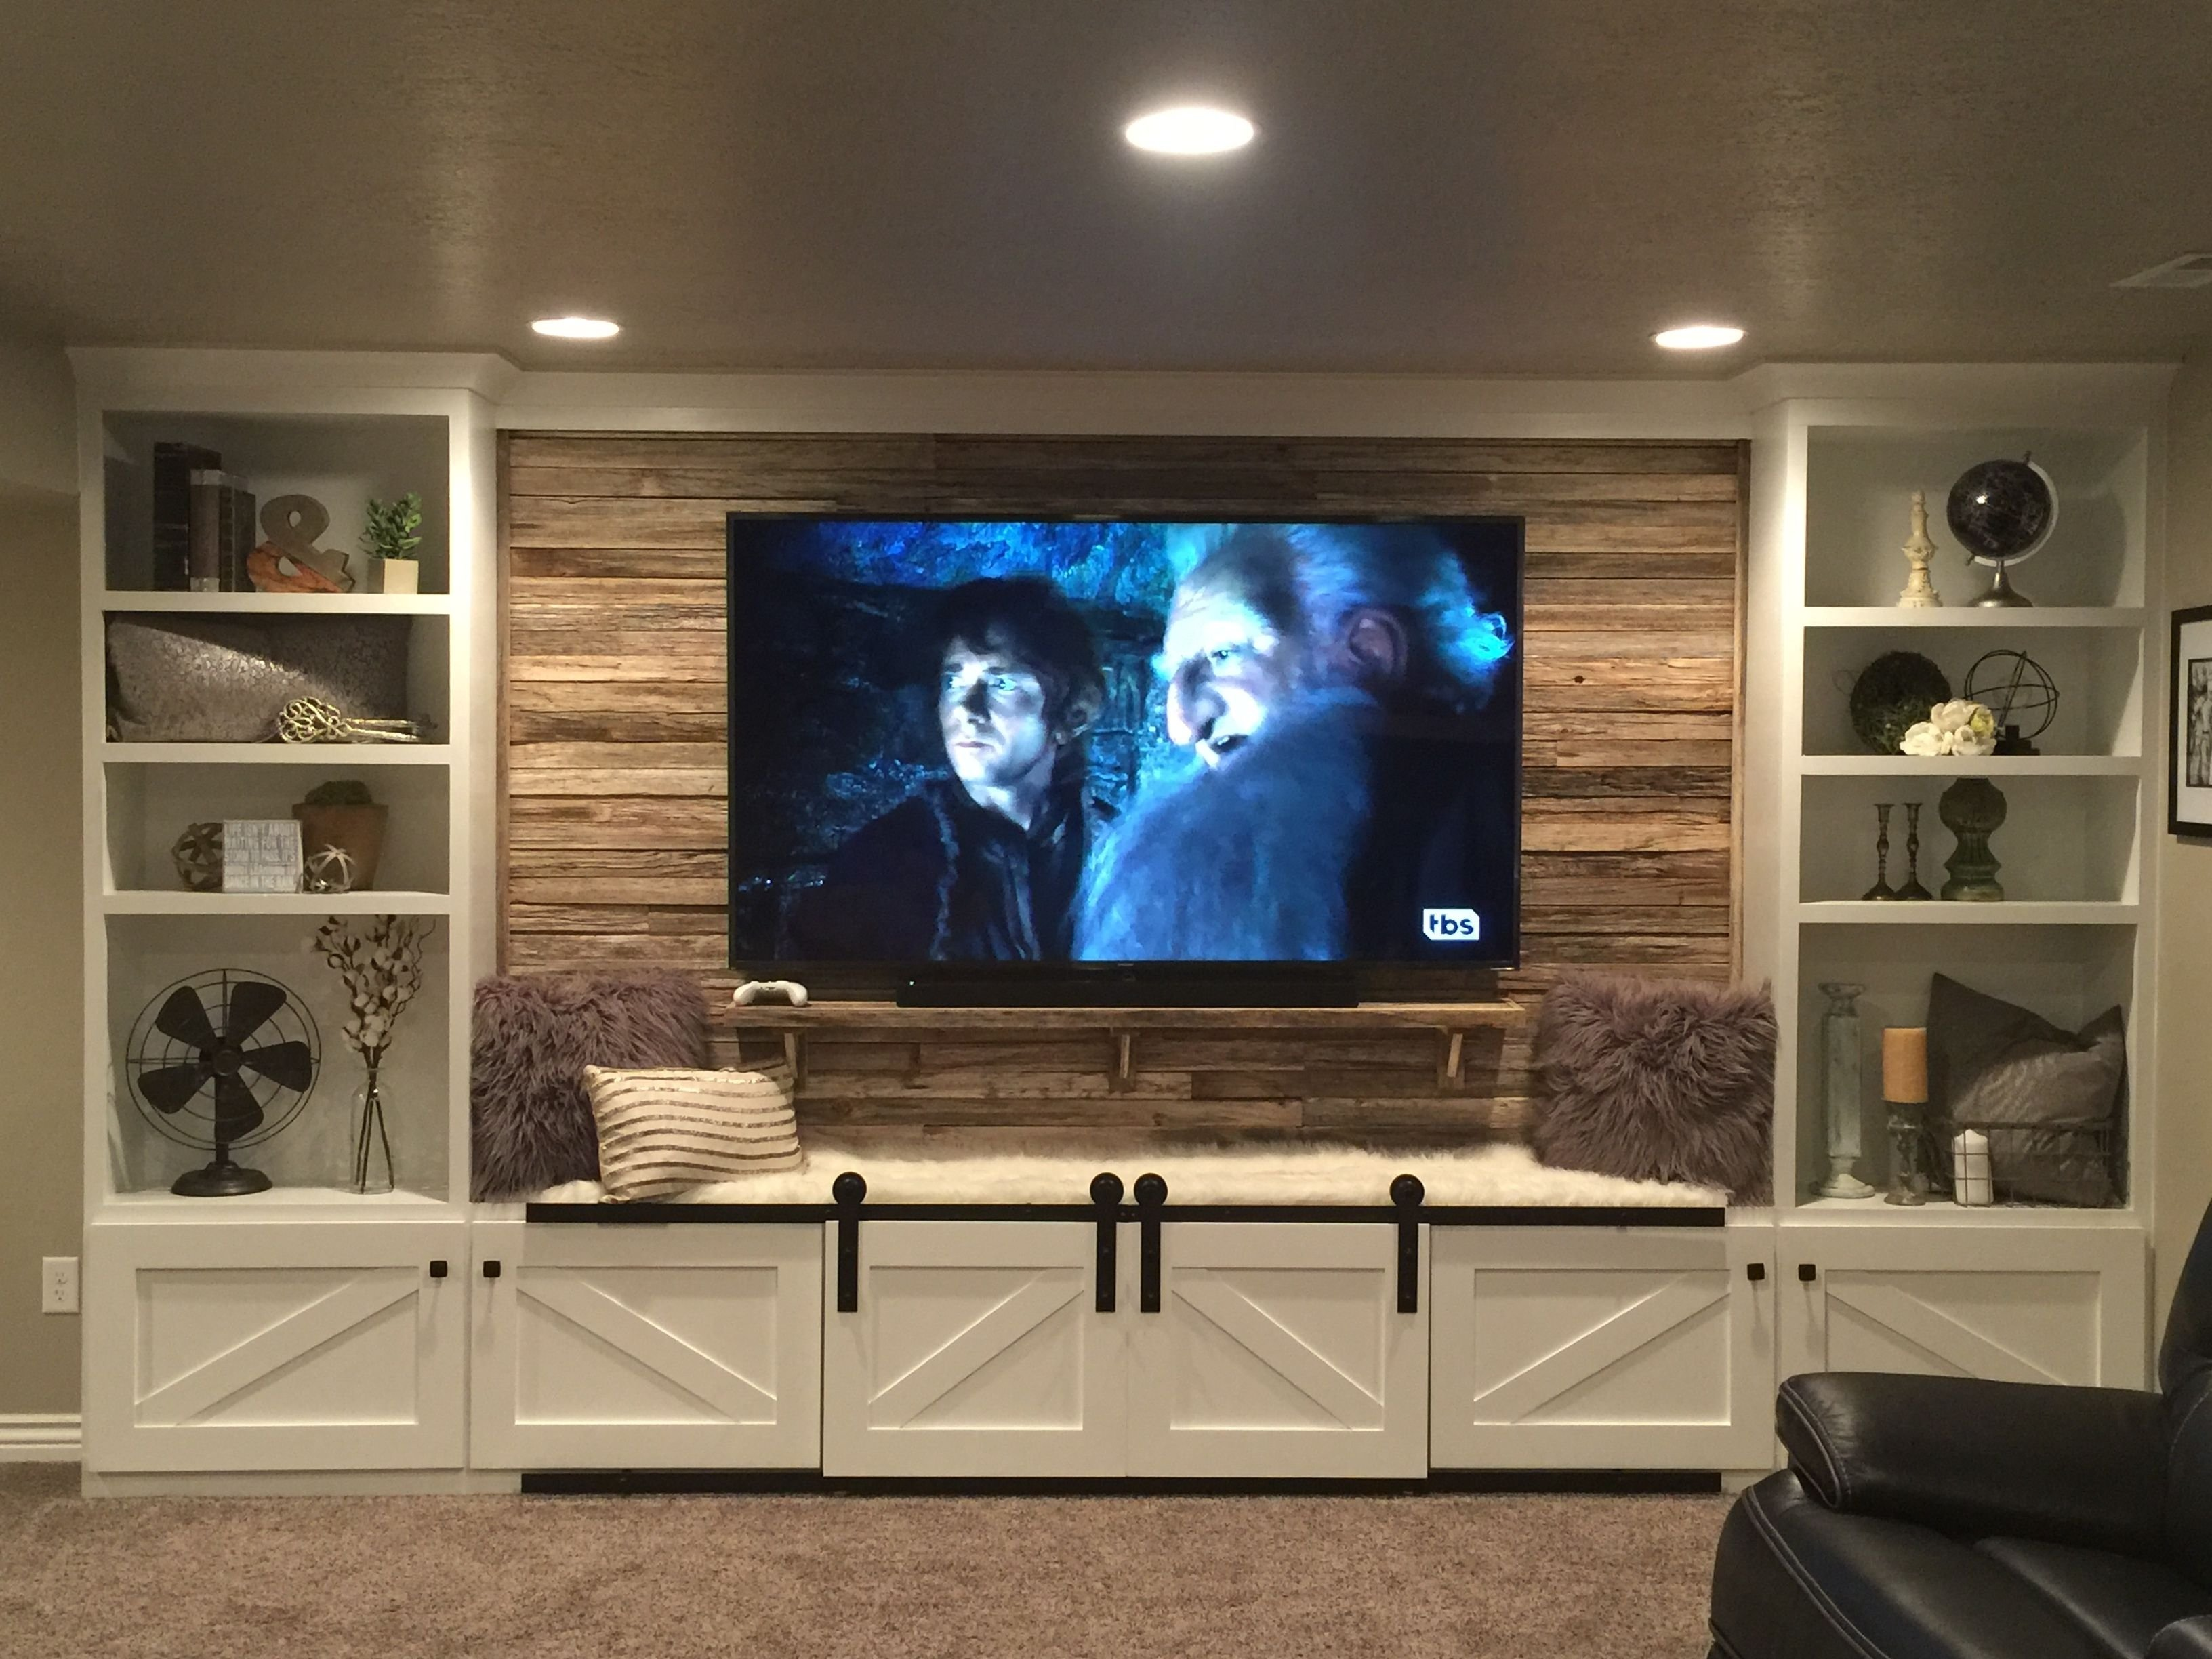 10 Awesome Built In Entertainment Center Ideas 17 diy entertainment center ideas and designs for your new home 2020